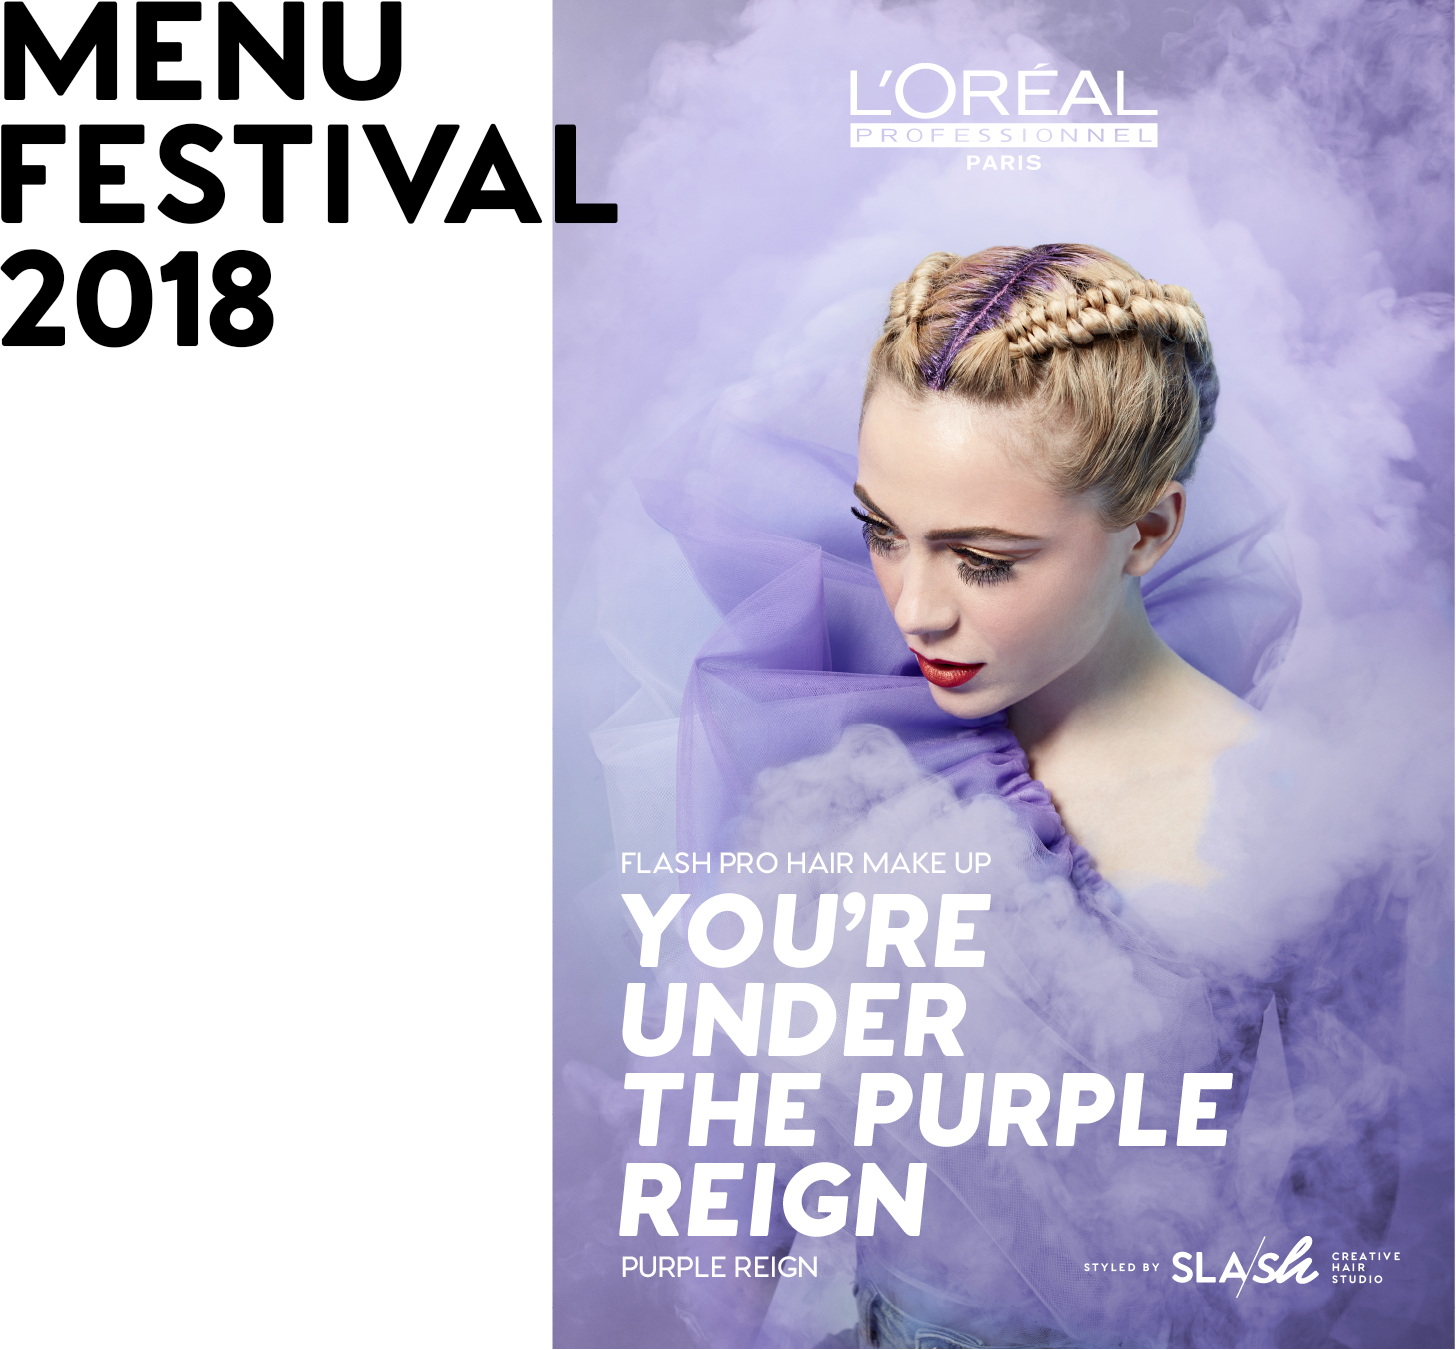 menu-festival-2018_1_youre_under_the_purple_reign